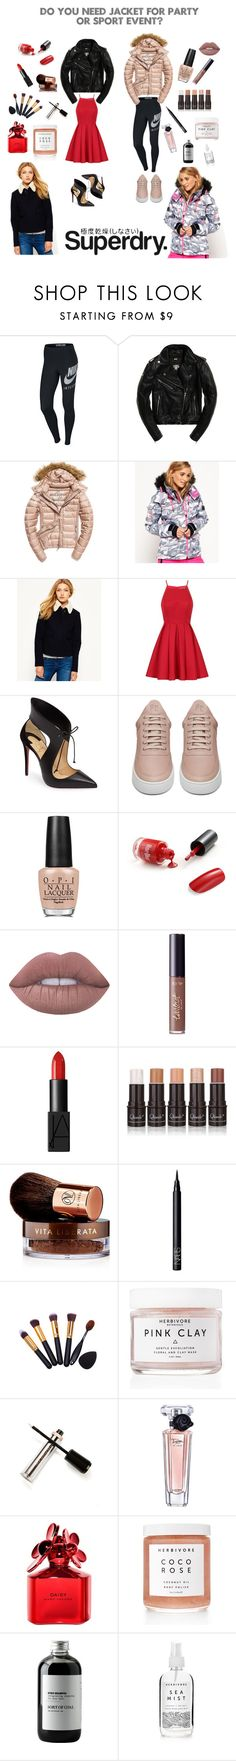 """""""The Cover Up – Jackets by Superdry: Contest Entry"""" by alma994 ❤ liked on Polyvore featuring NIKE, Fuji, Superdry, Chi Chi, Christian Louboutin, Filling Pieces, OPI, Lime Crime, tarte and NARS Cosmetics"""